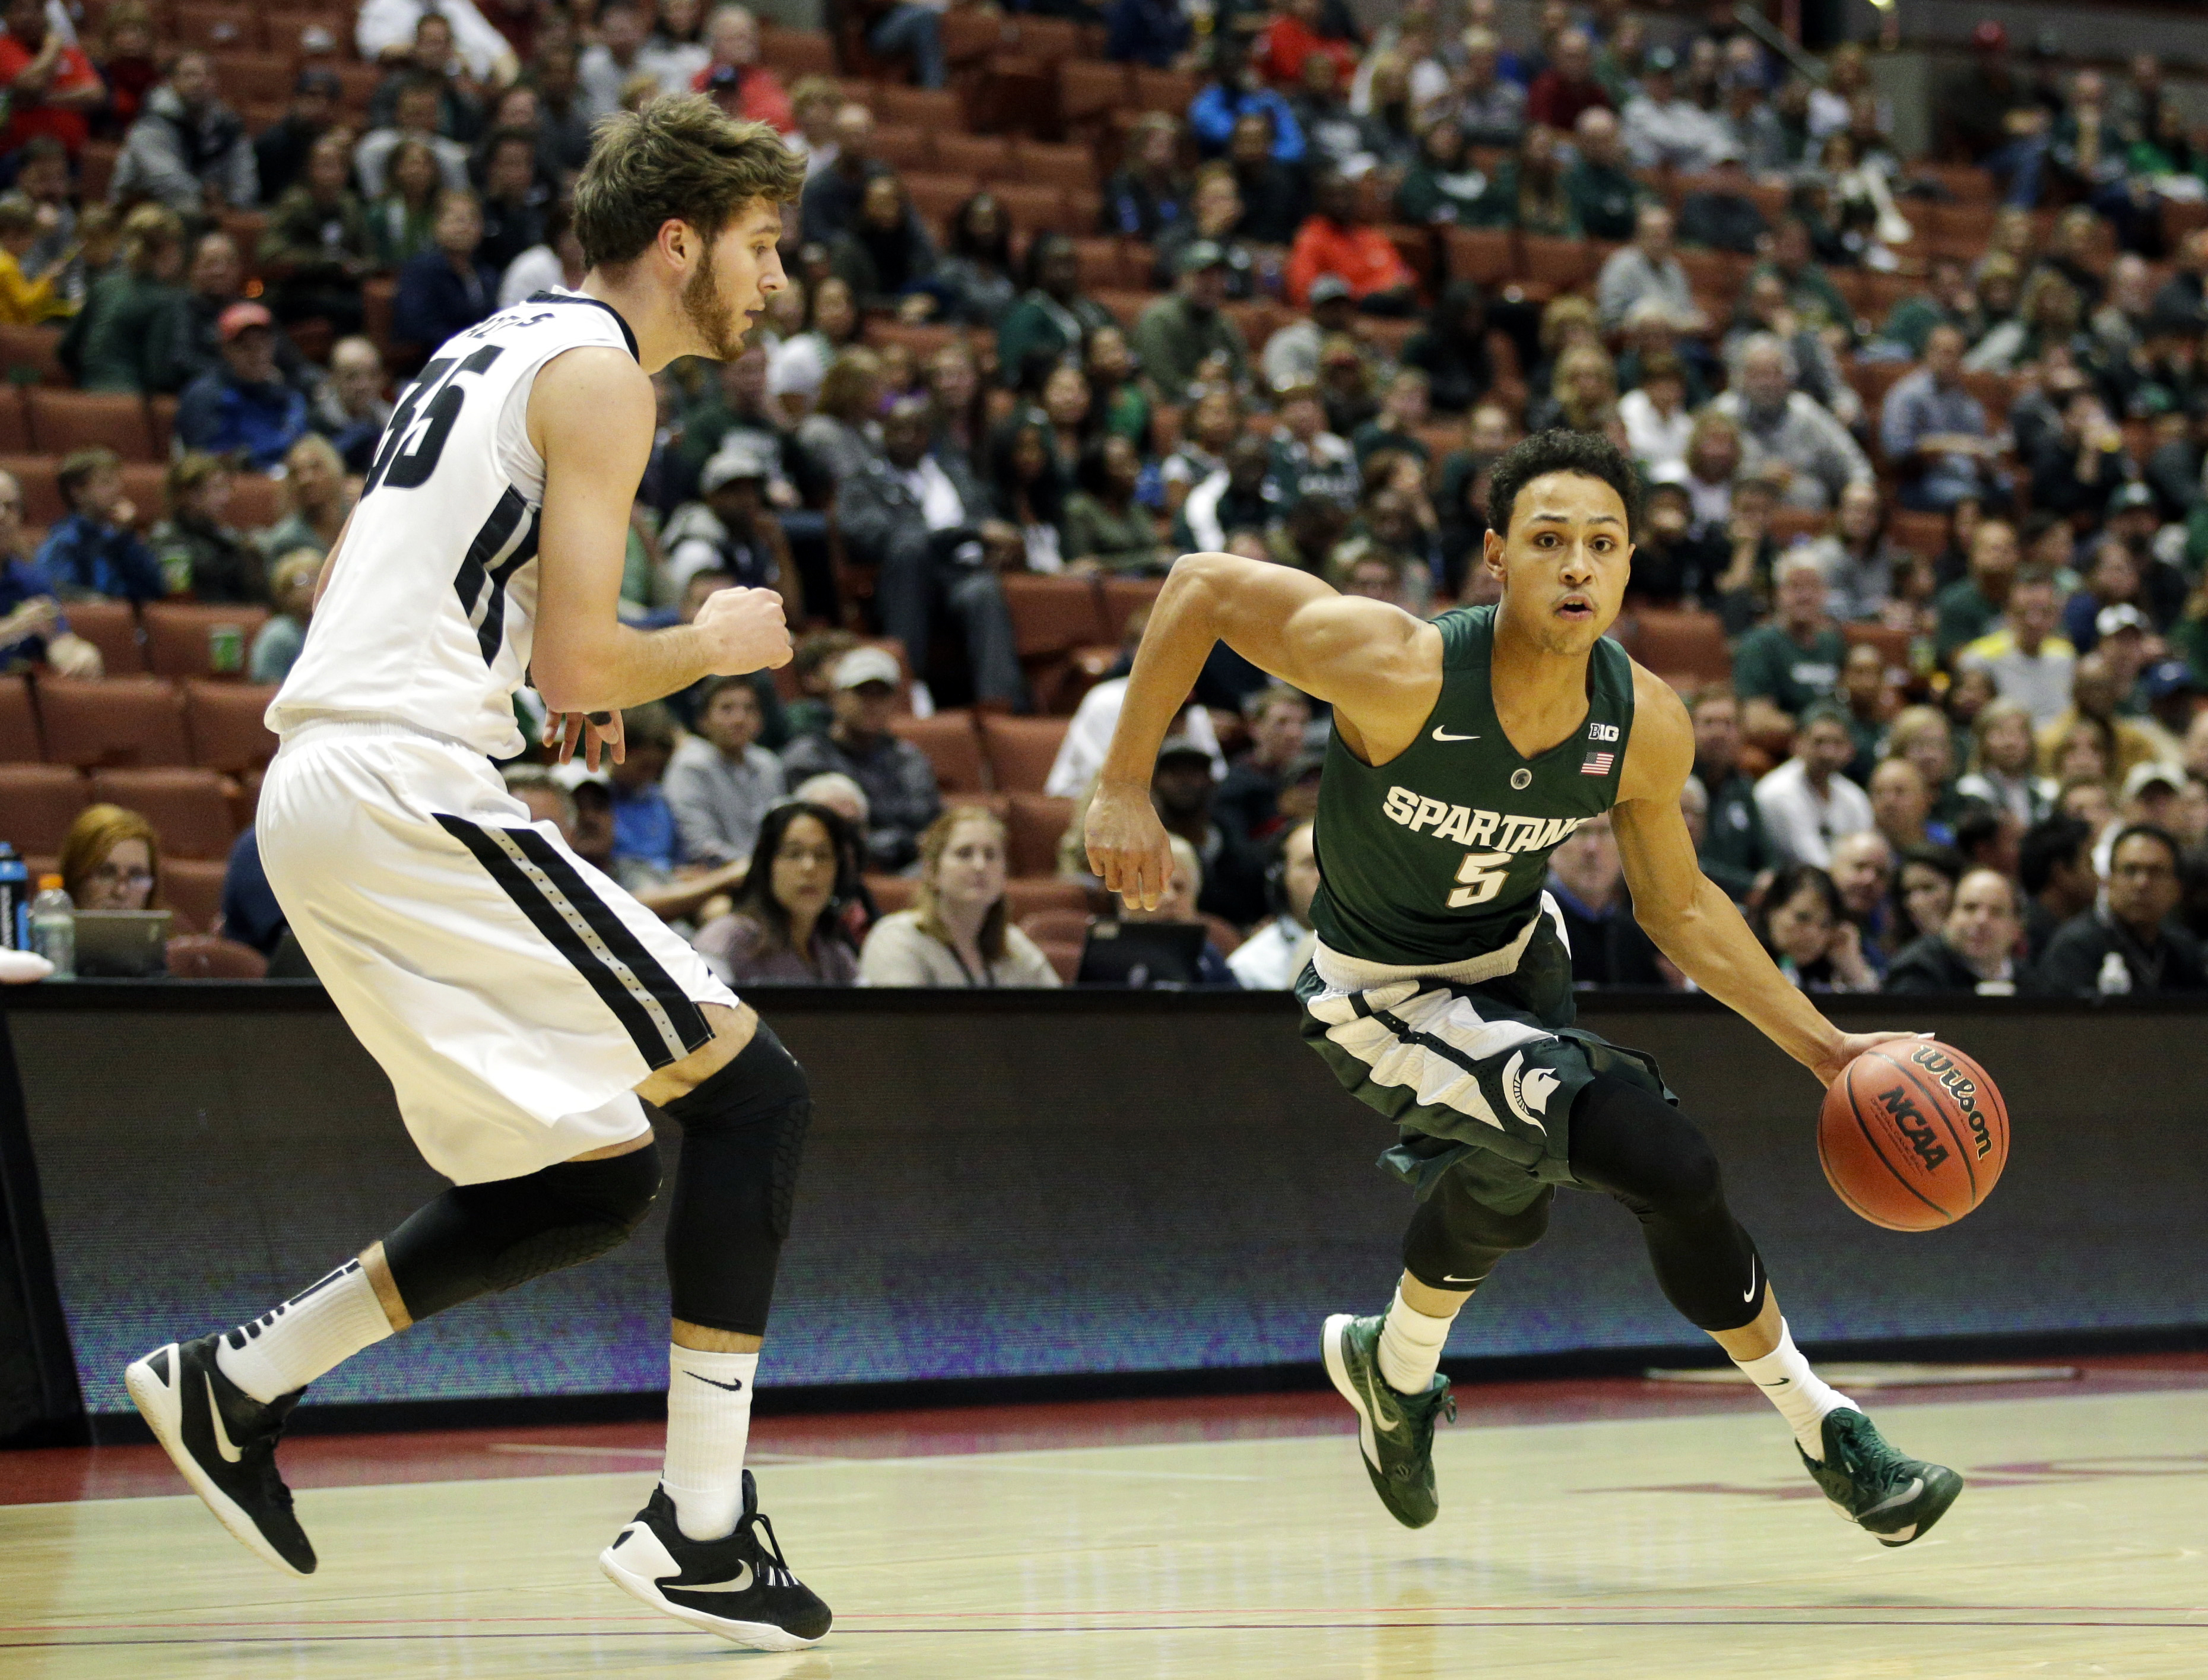 Michigan State guard Bryn Forbes, right, dribbles as Providence guard Ryan Fazekas watches during the first half of an NCAA college basketball game at the Wooden Legacy tournament, Sunday, Nov. 29, 2015, in Anaheim, Calif. (AP Photo/Jae C. Hong)